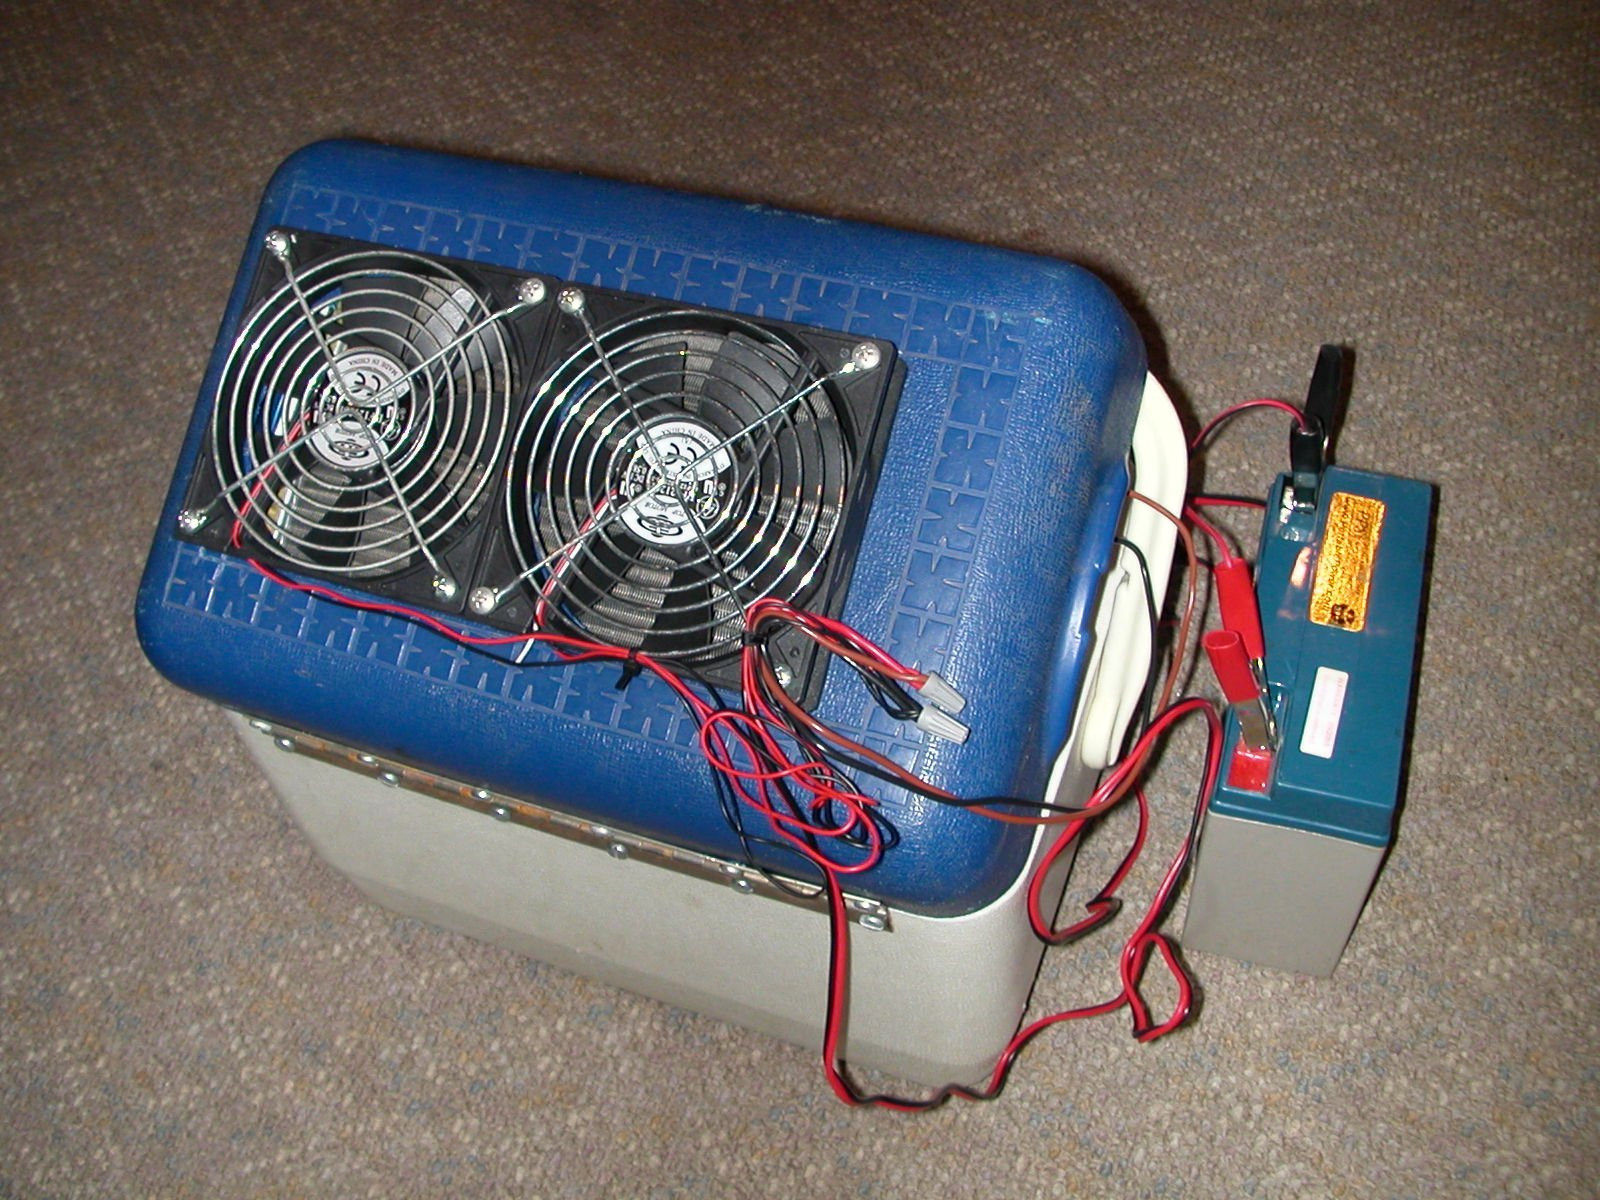 Best ideas about DIY Air Conditioning . Save or Pin Portable 12V Air Conditioner Cheap and Easy 12 Steps Now.